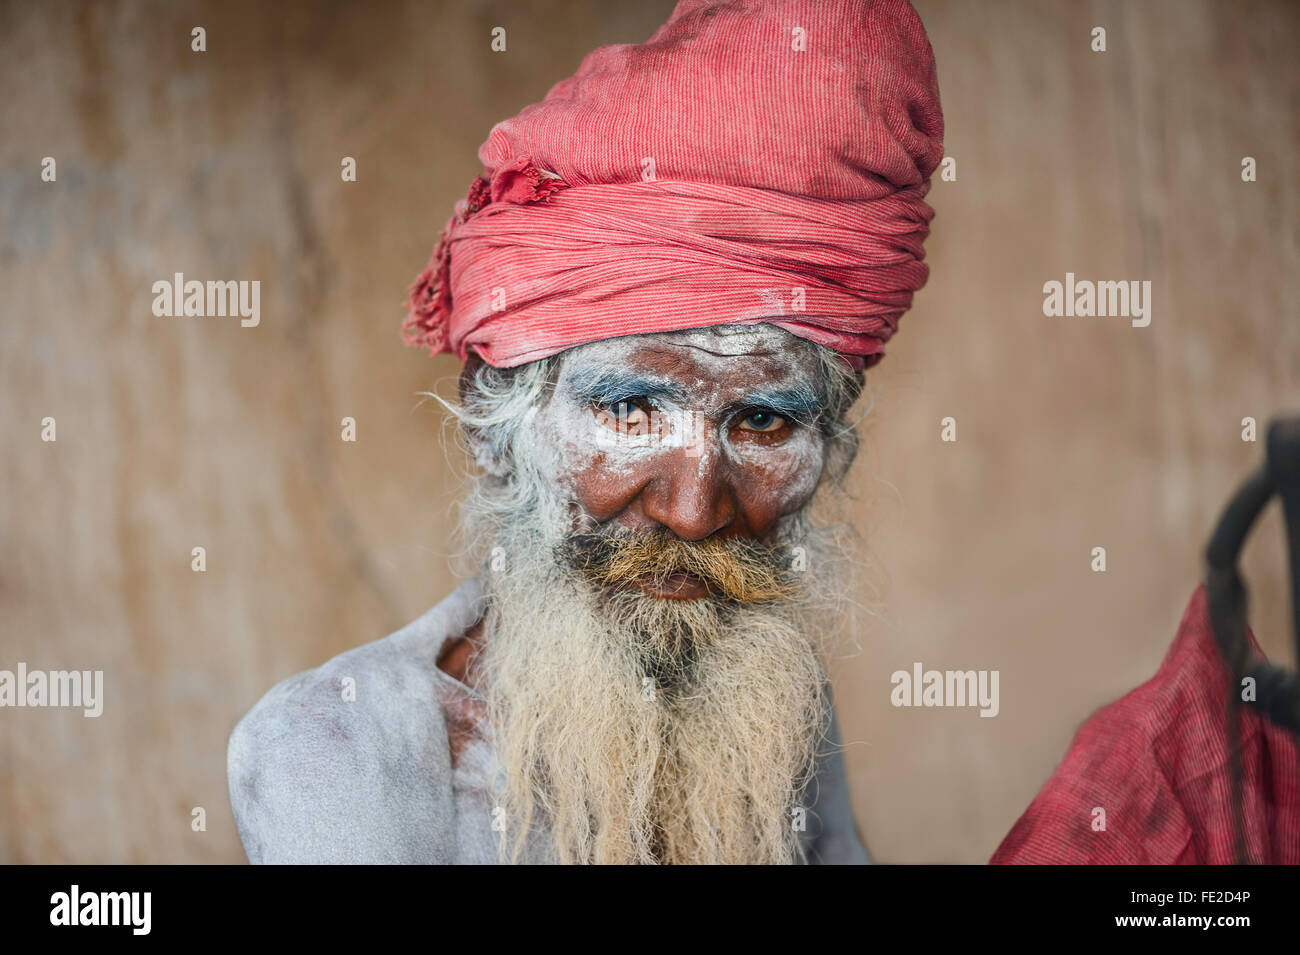 Arresting Sadhus Portrait Photography Religious Photography: Portrait Of A Naga Sadhu, A Hindu Religious Man, On